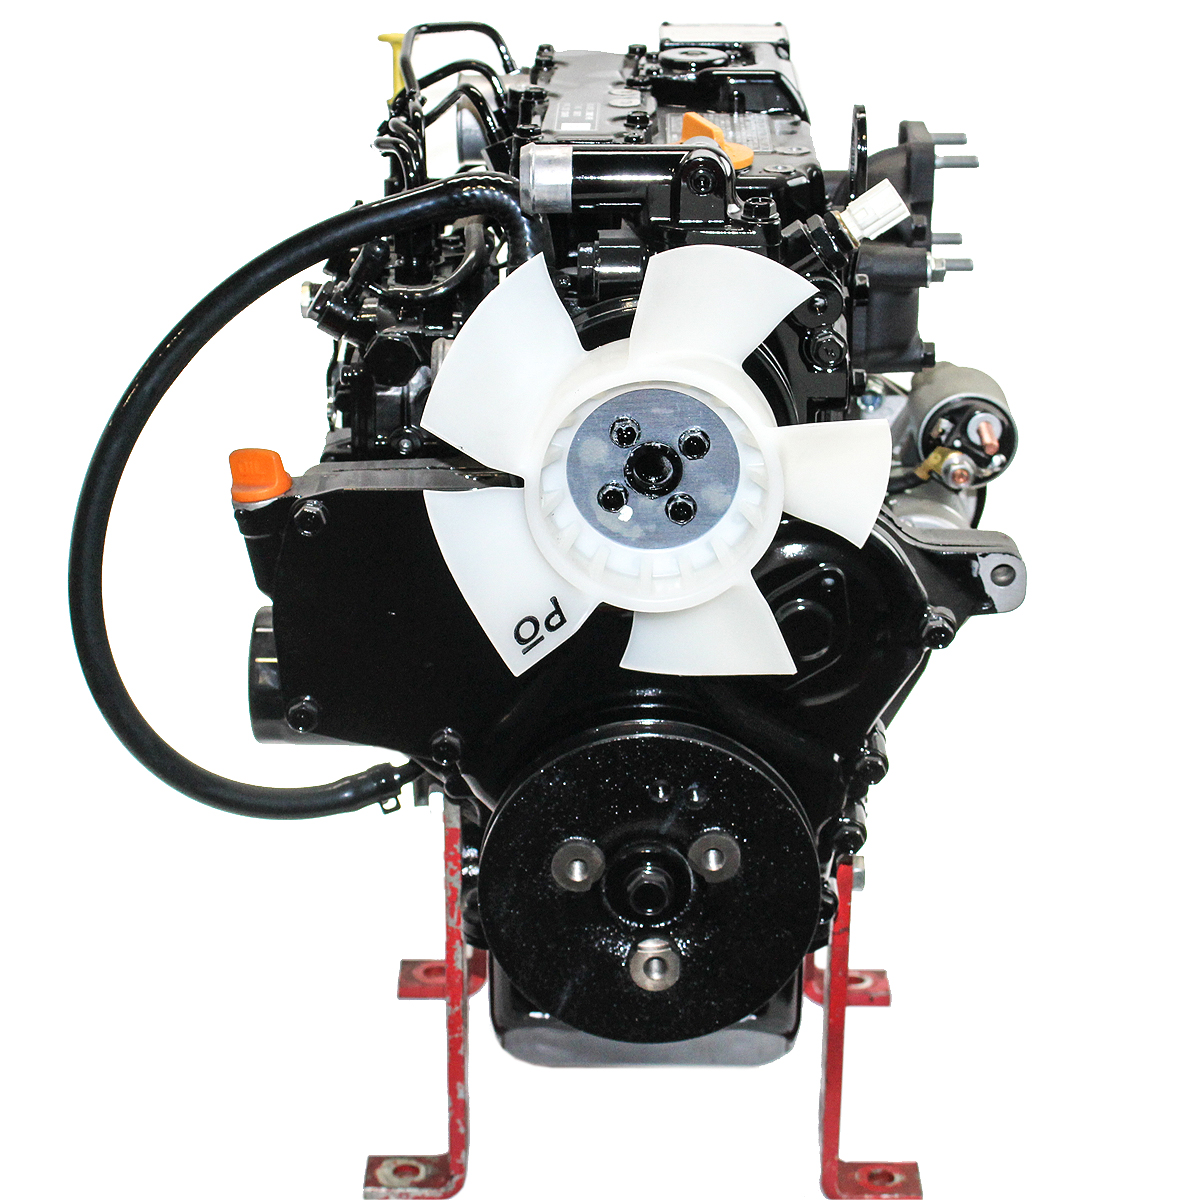 Yanmar 22.9 net hp @ 3600 RPM, 3 Cyl, Diesel, Liquid Cooled,  Yanmar Diesel Engine